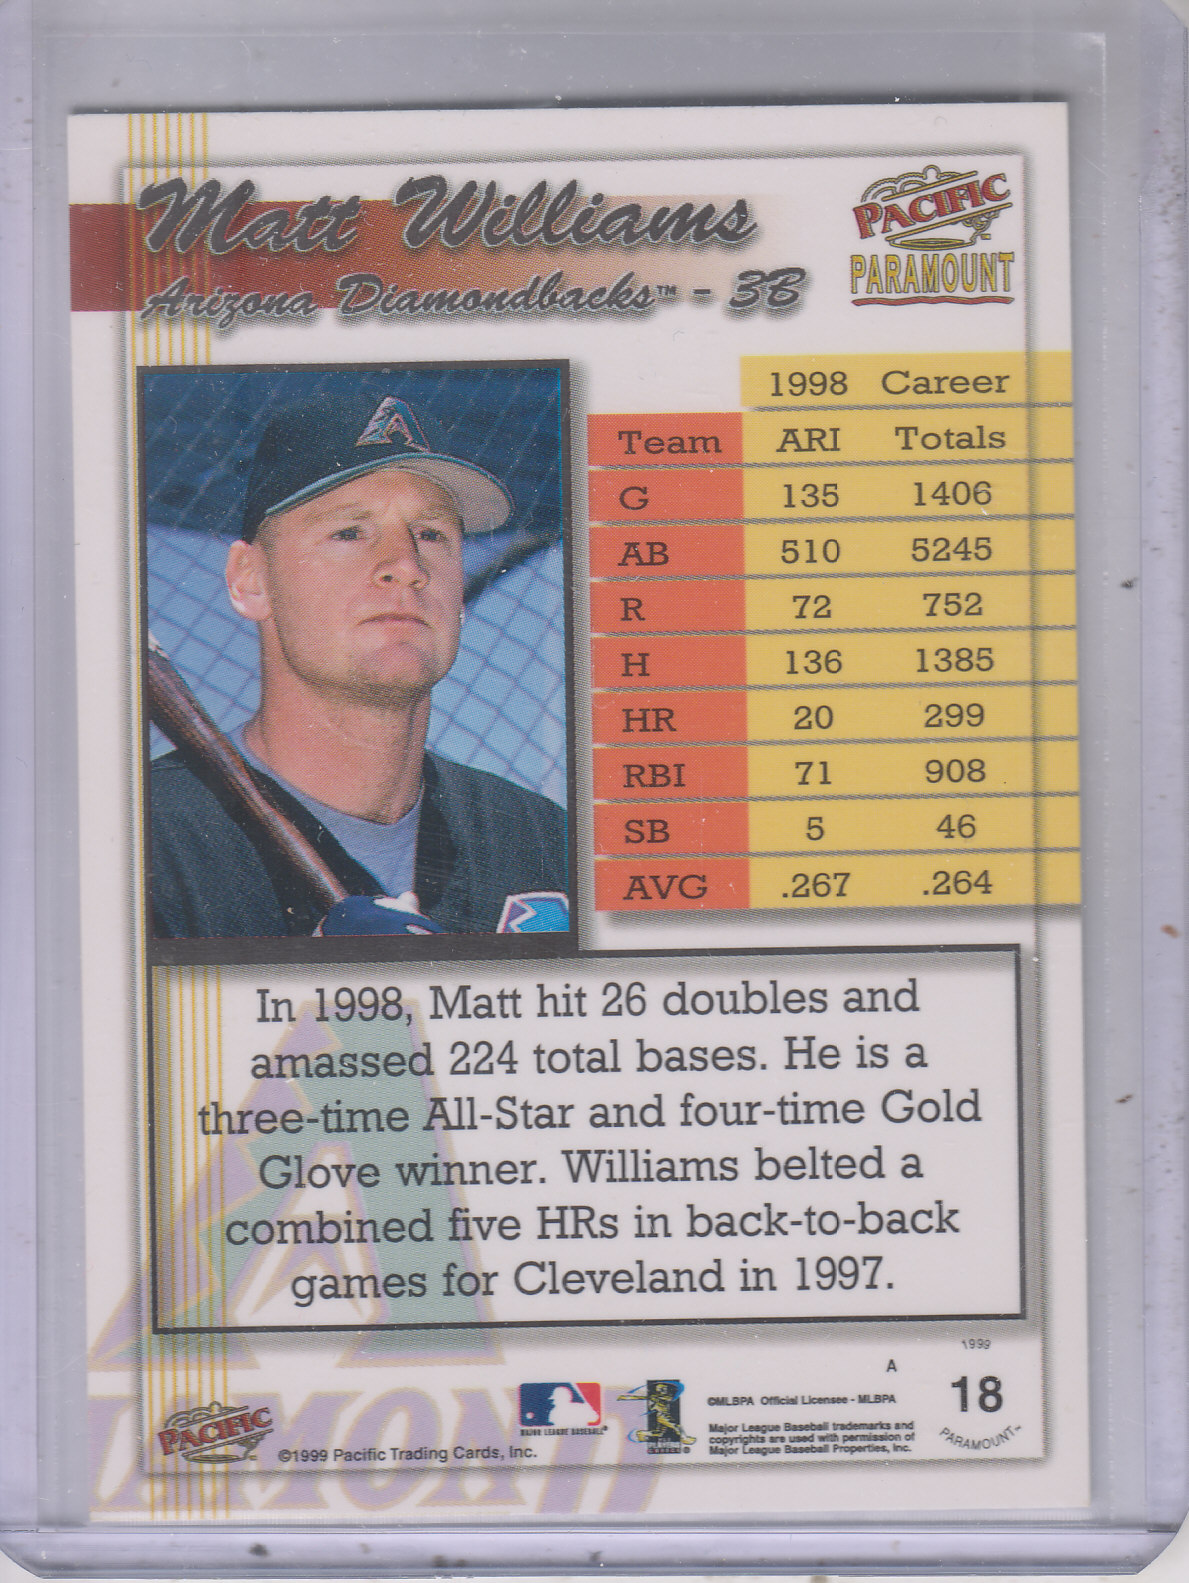 1999 Paramount Holo-Gold #18 Matt Williams back image